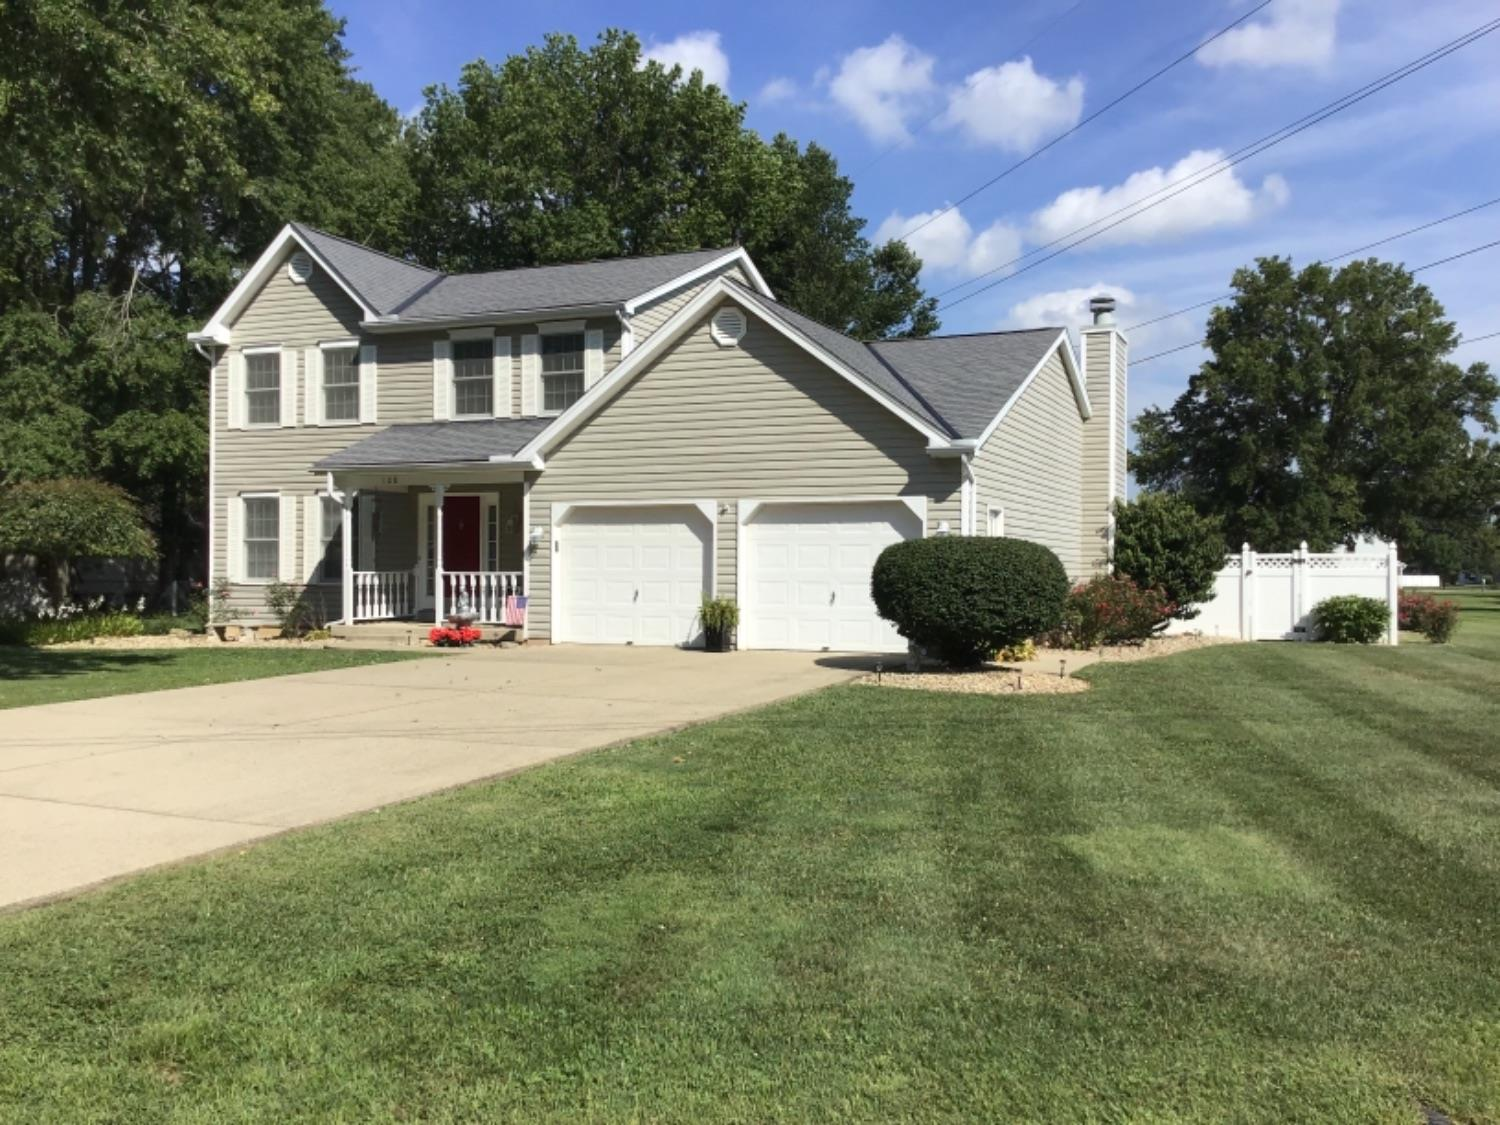 108 Hammerstone Wy Pike Twp., OH